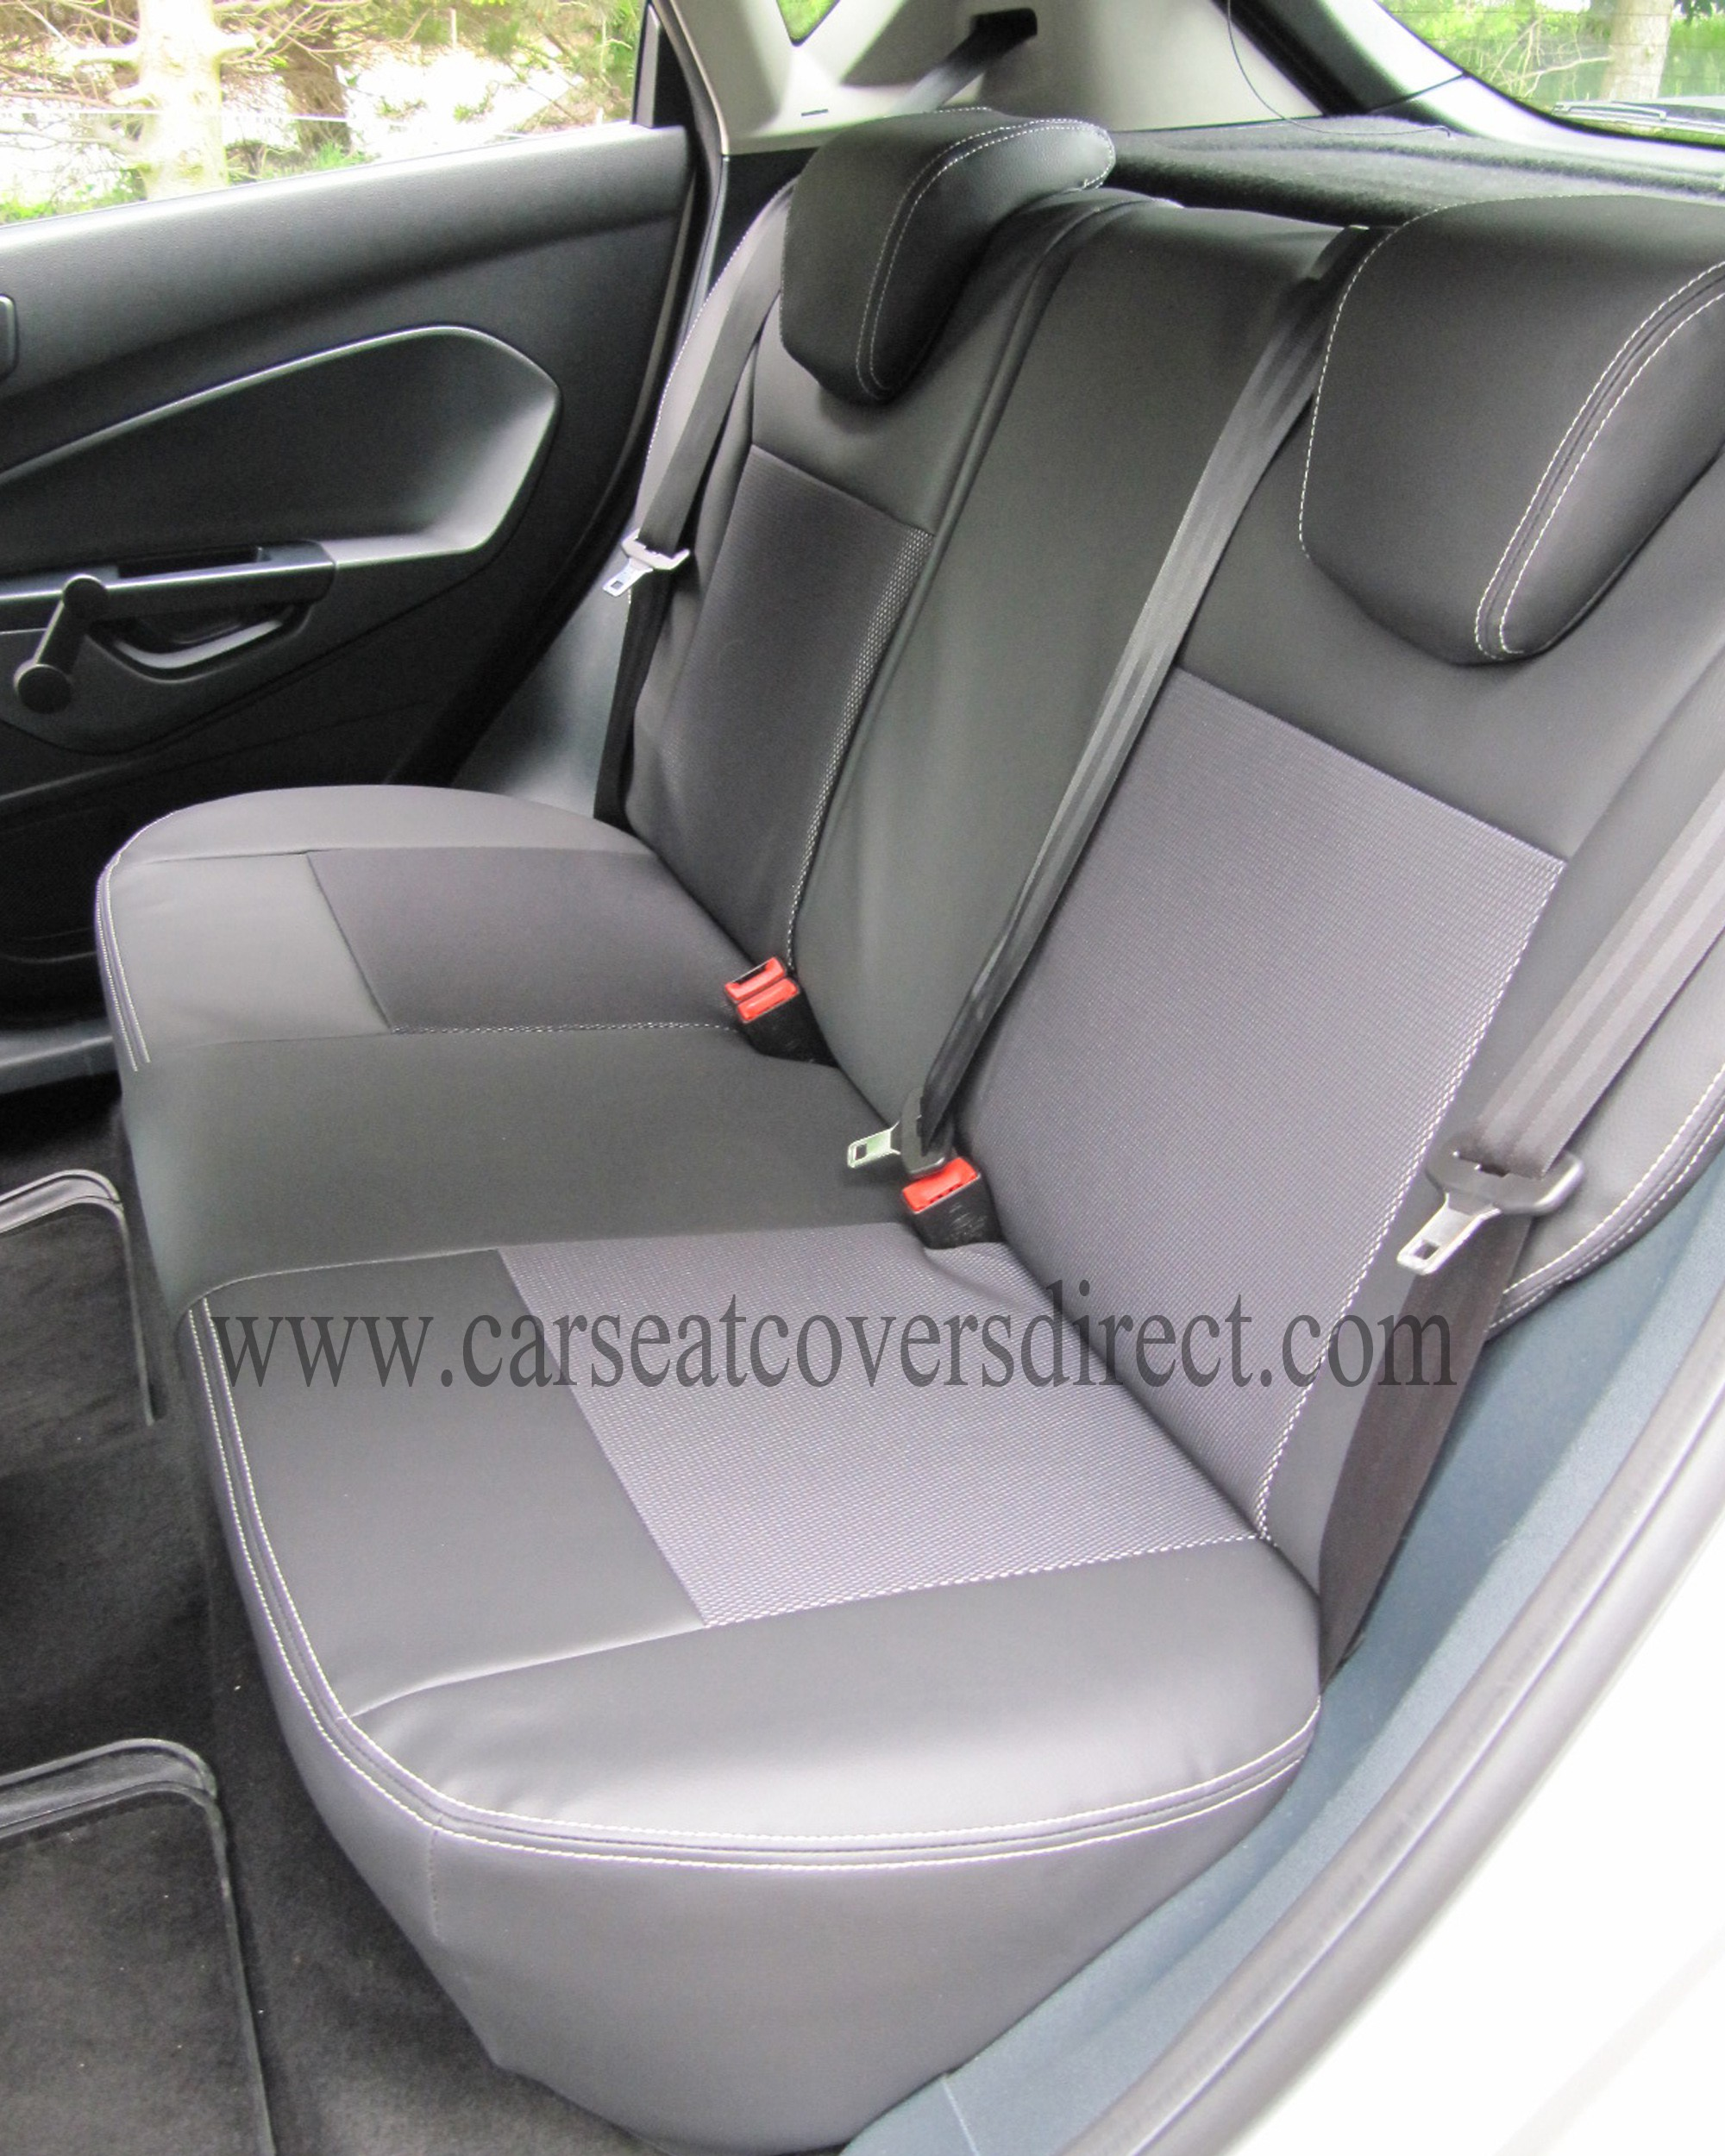 ford fiesta seat covers black leatherette with cloth centres car seat covers direct tailored. Black Bedroom Furniture Sets. Home Design Ideas